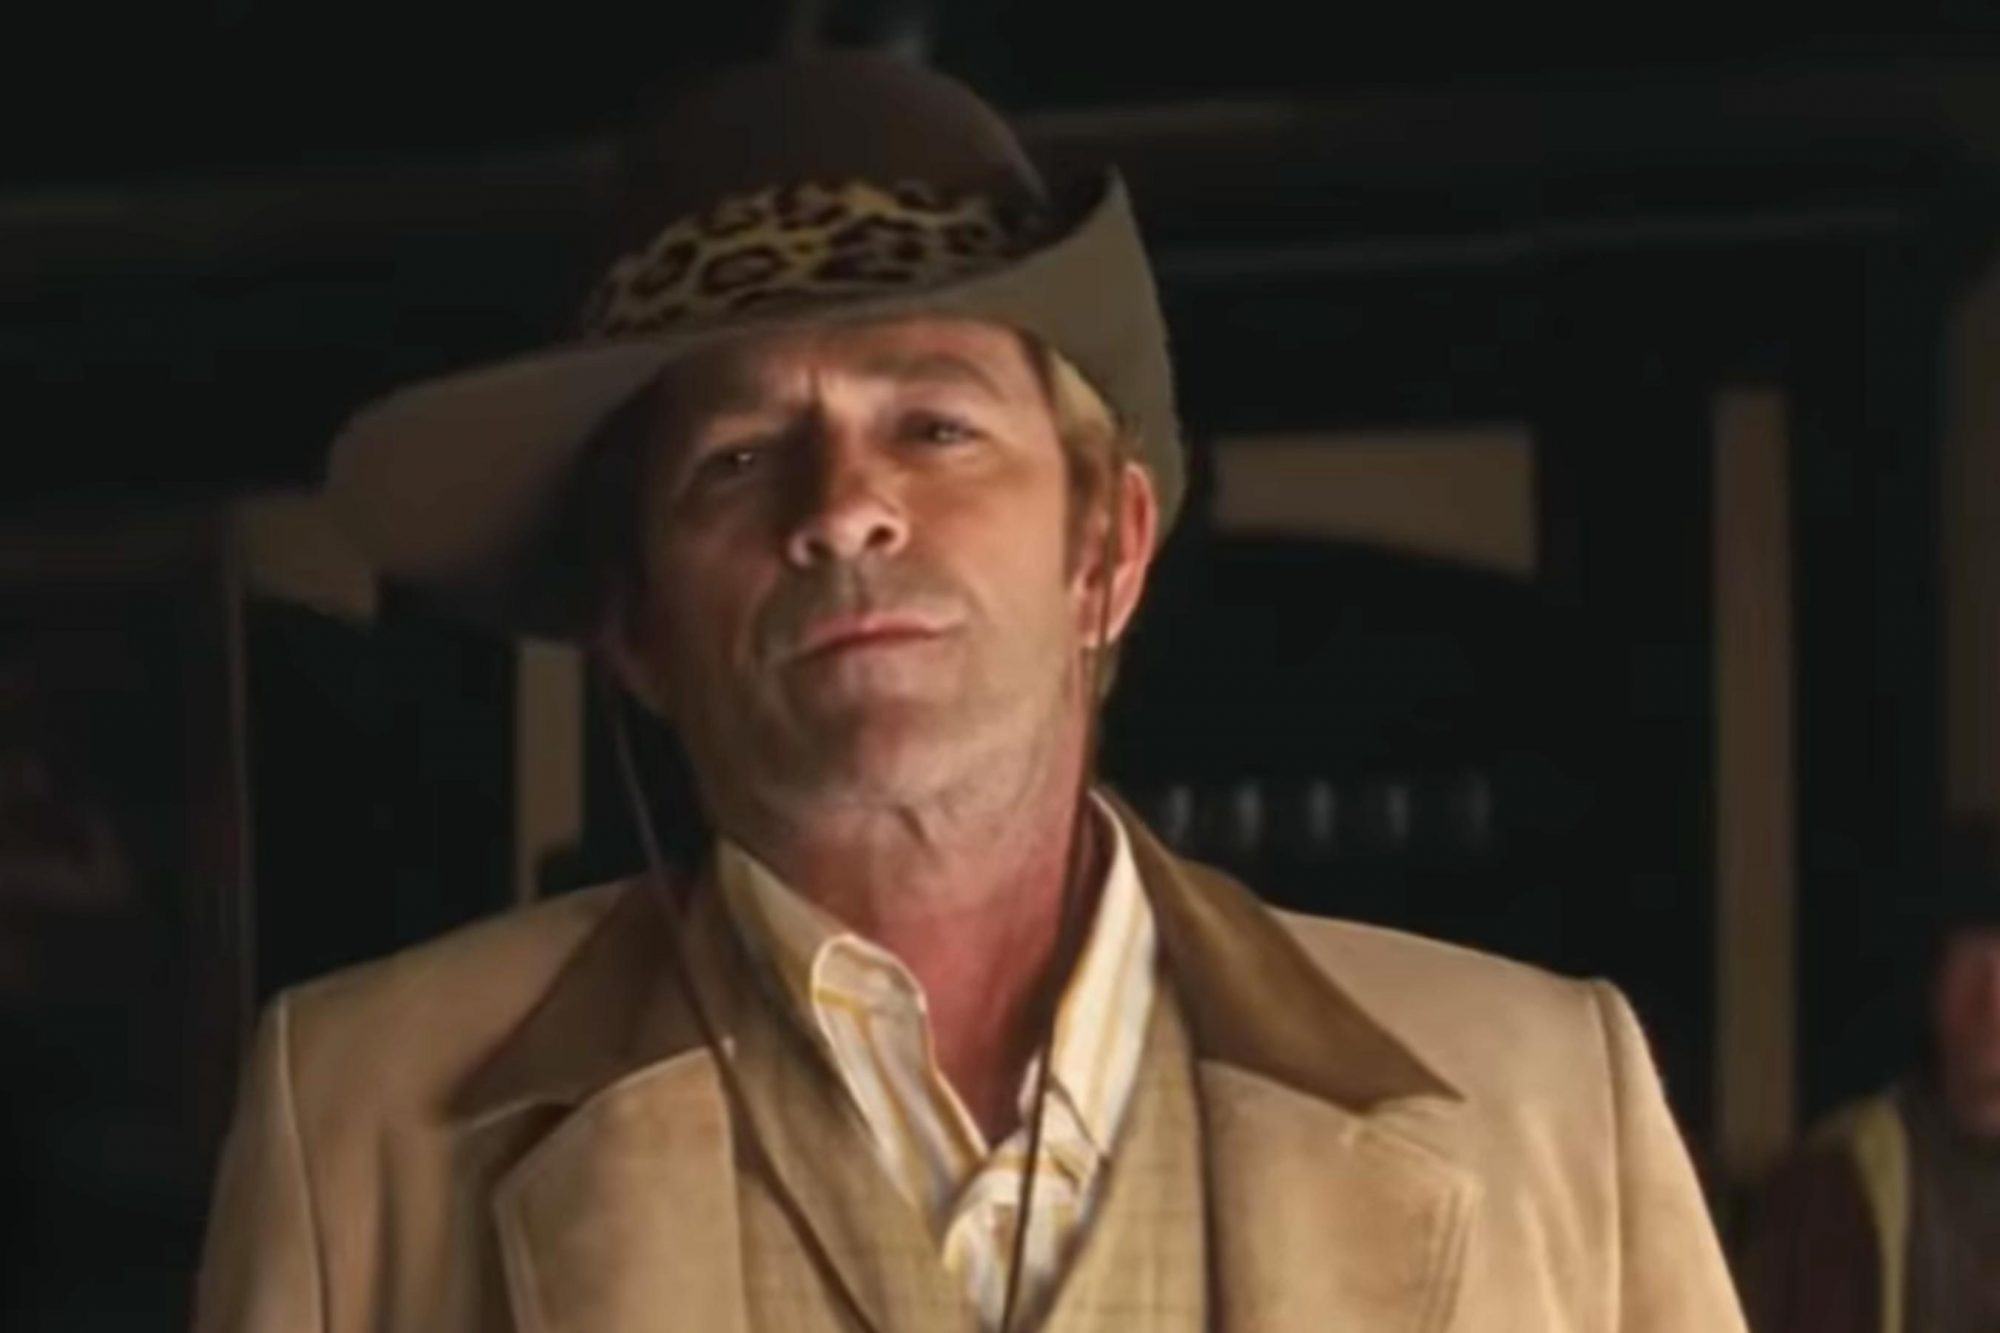 ONCE UPON A TIME IN HOLLYWOOD - Official Trailer (screen grab) Luke Perry https://www.youtube.com/watch?v=ELeMaP8EPAA CR: Sony